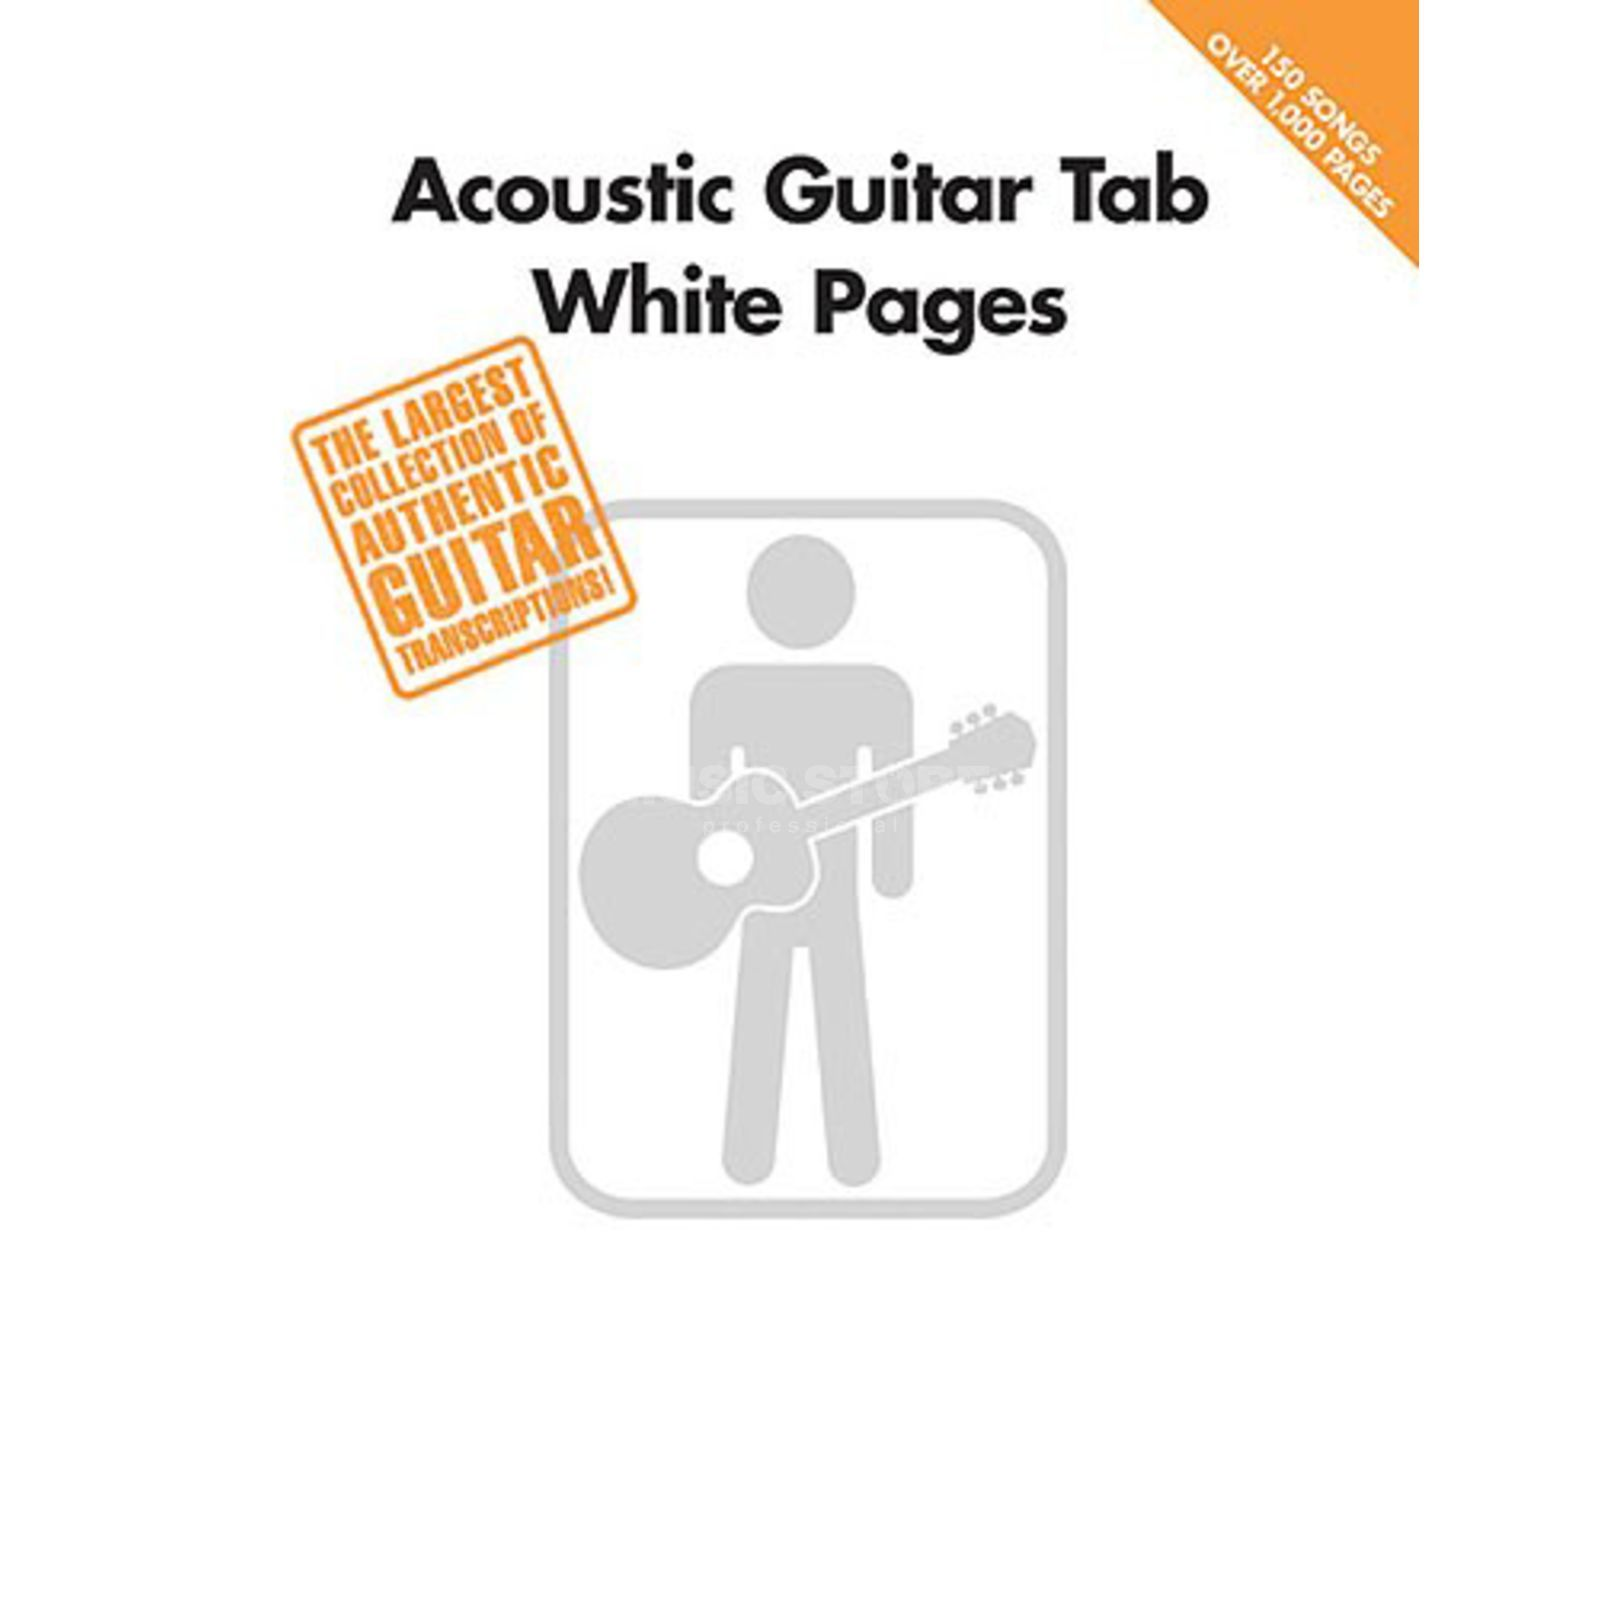 Hal Leonard Acoustic Guitar Tab White Pages Produktbillede